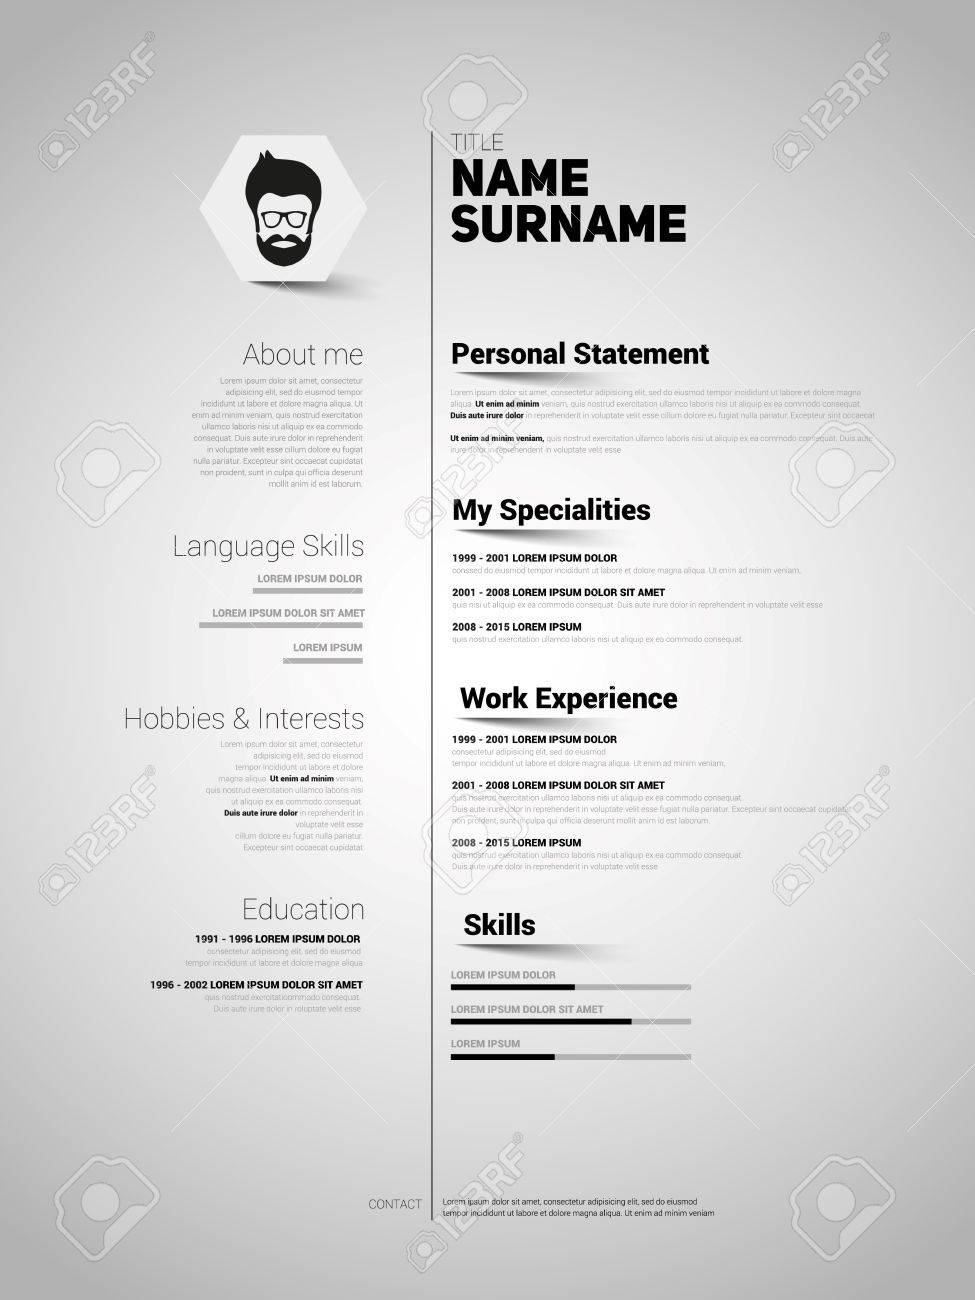 Minimalist CV, Resume Template With Simple Design, Vector Stock Vector    44832776